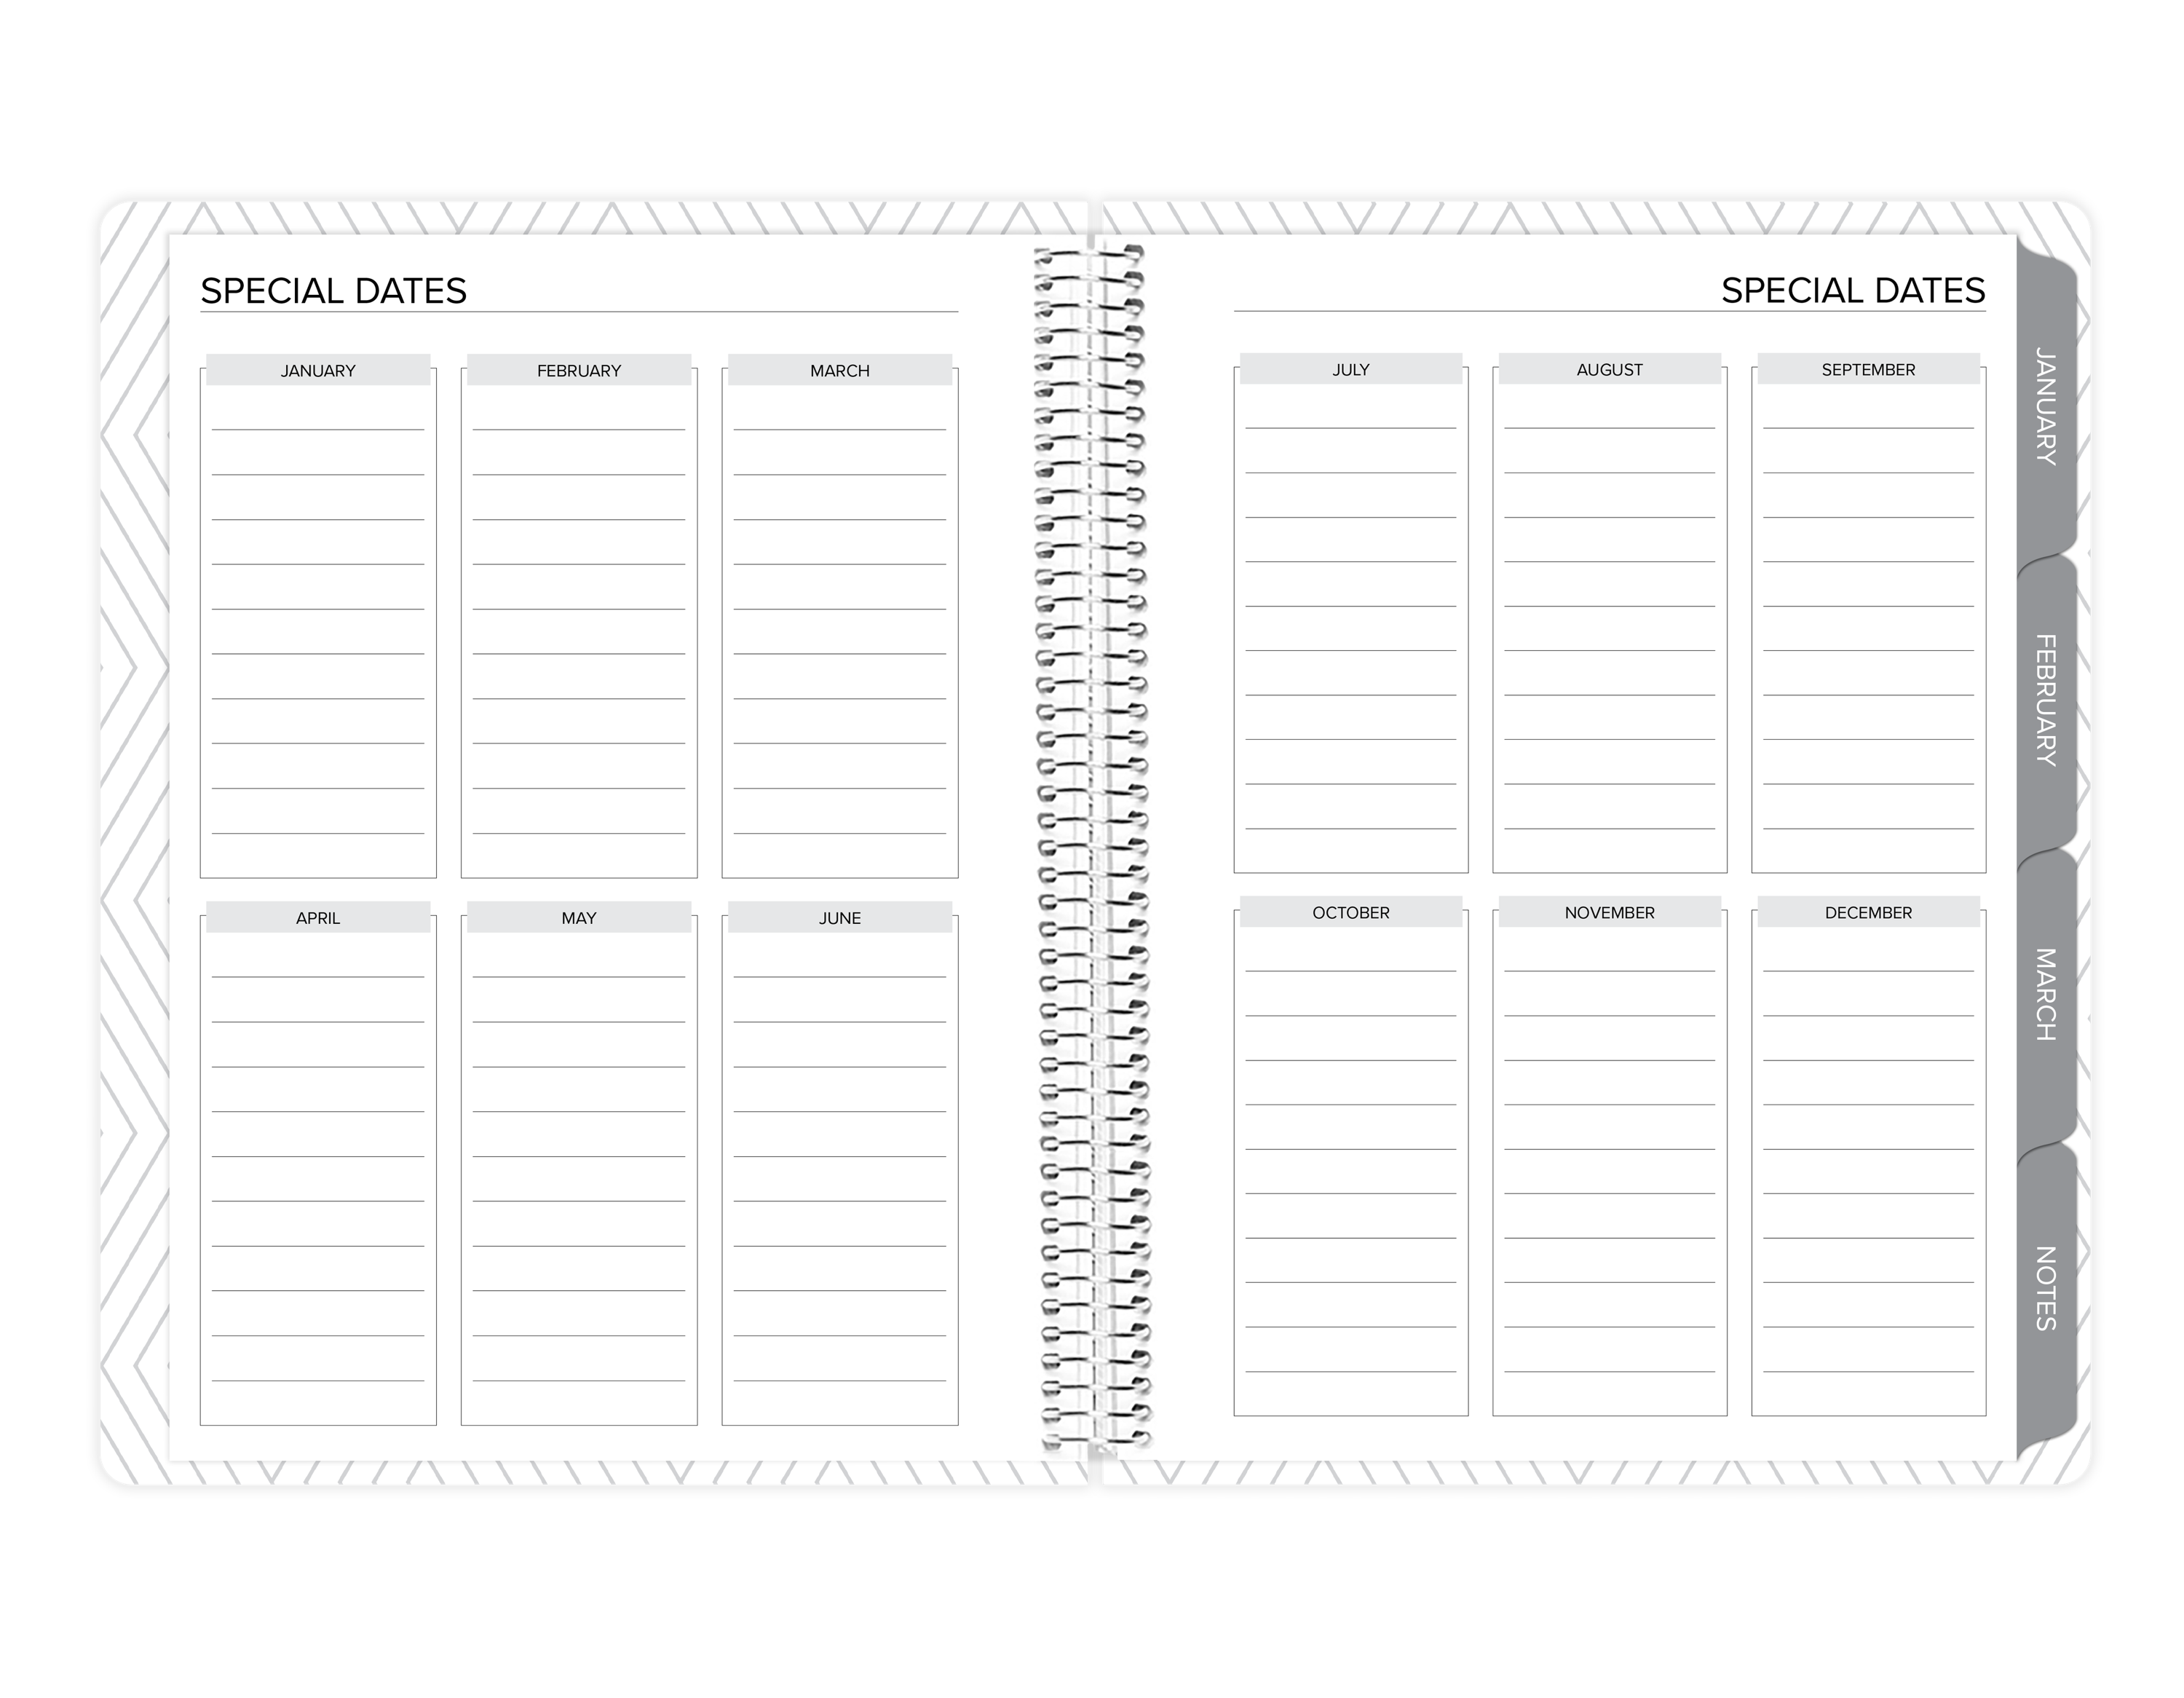 amplify planner special dates